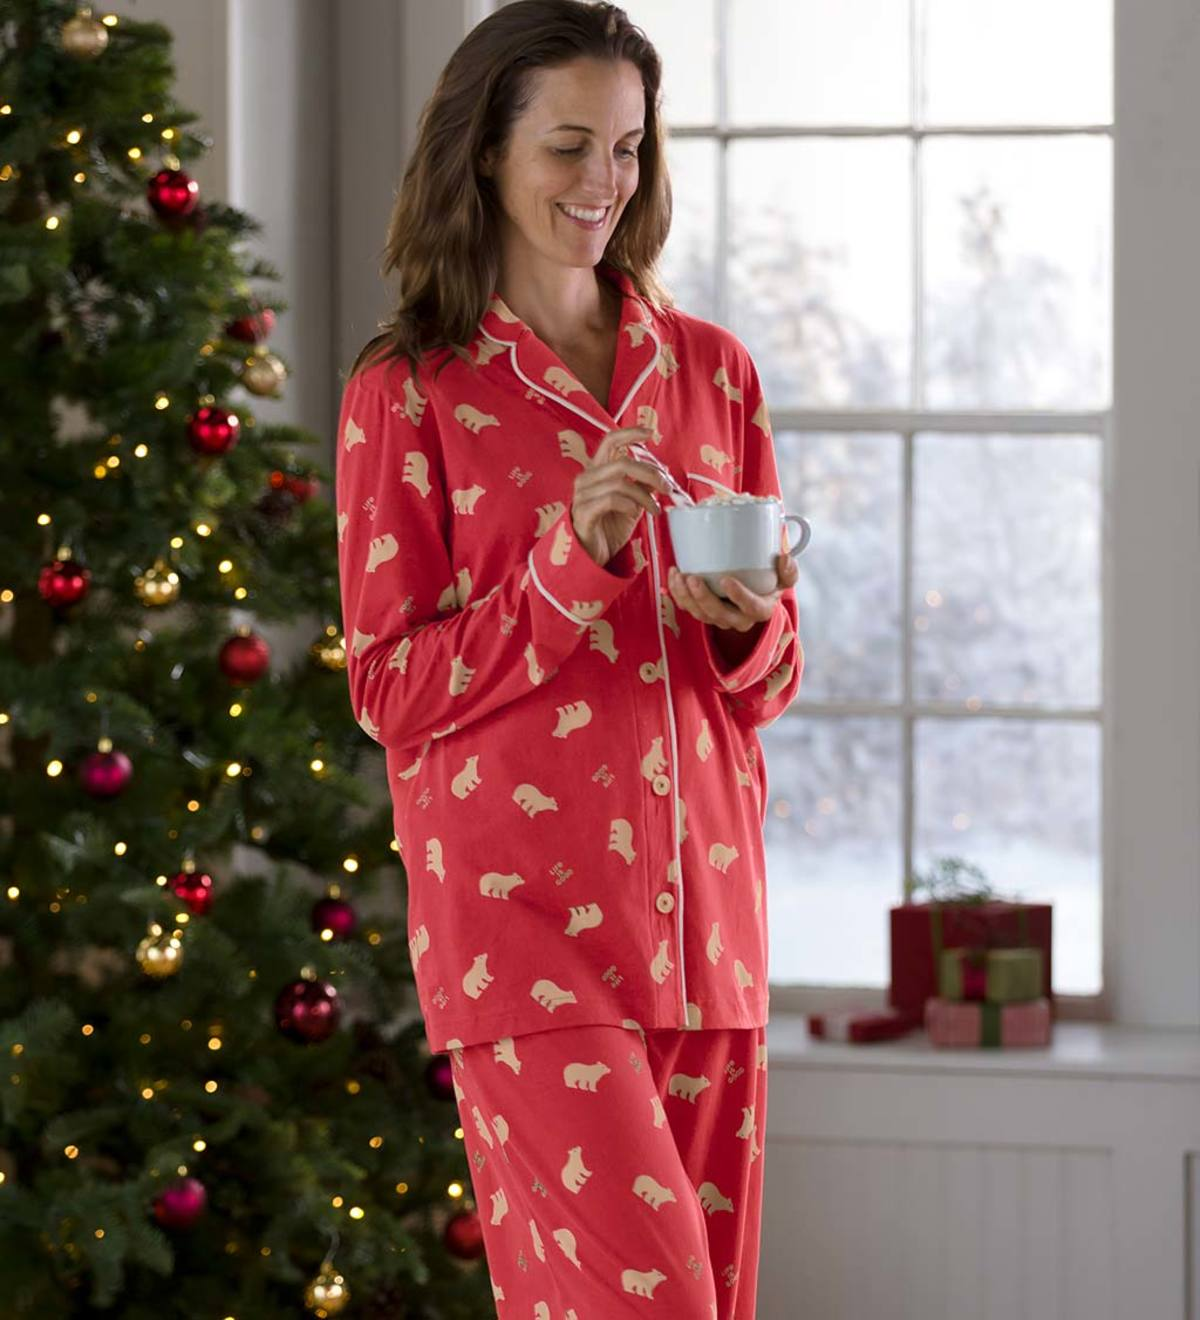 Life is Good Women's Polar Bear Pajama Set